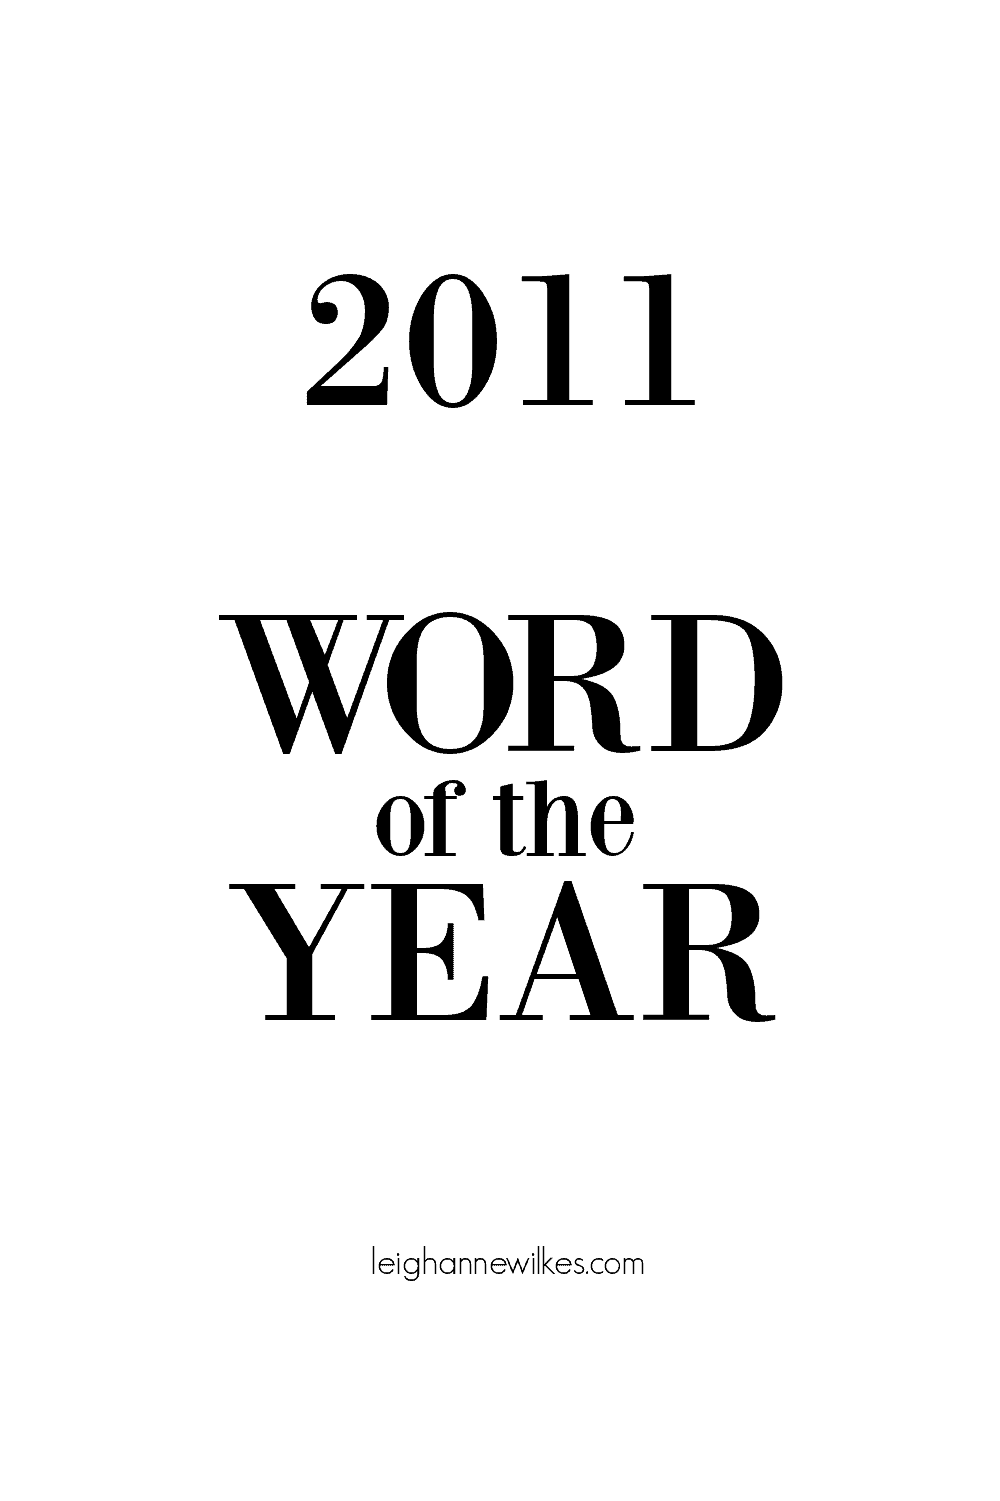 2011 word of the year